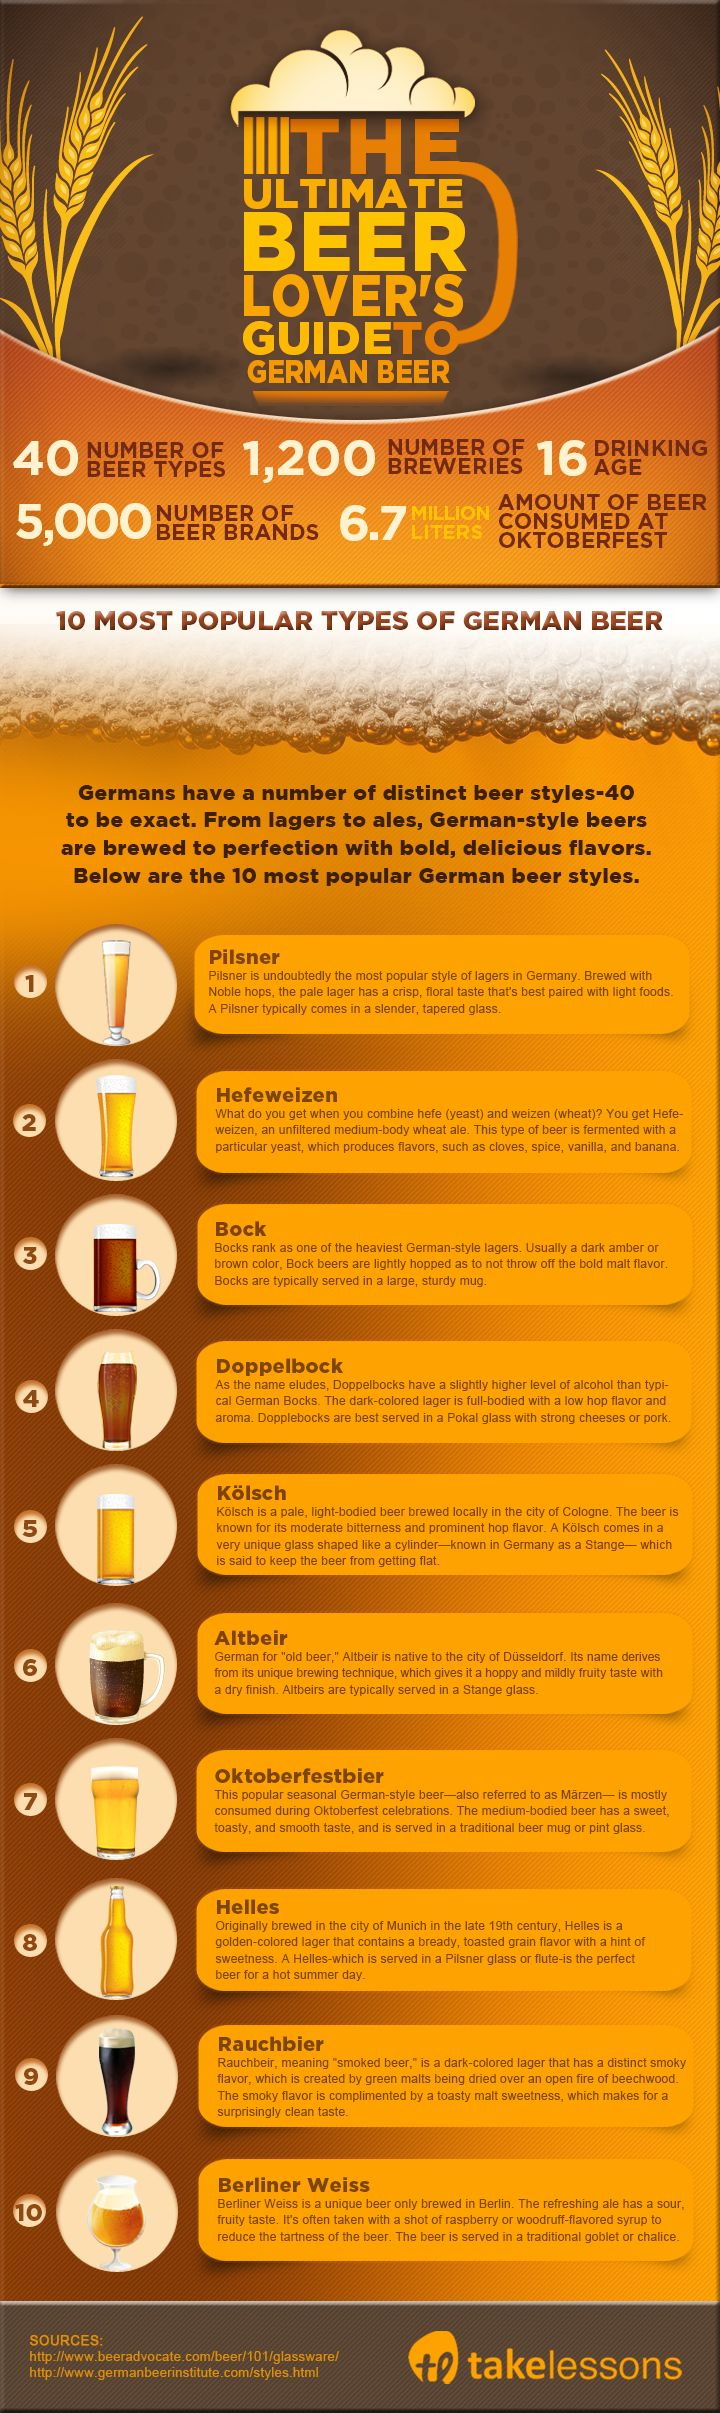 The Ultimate Beer Lover's Guide to German Beers [Infographic] http://takelessons.com/blog/german-beers-z12?utm_source=social&utm_medium=blog&utm_campaign=pinterest